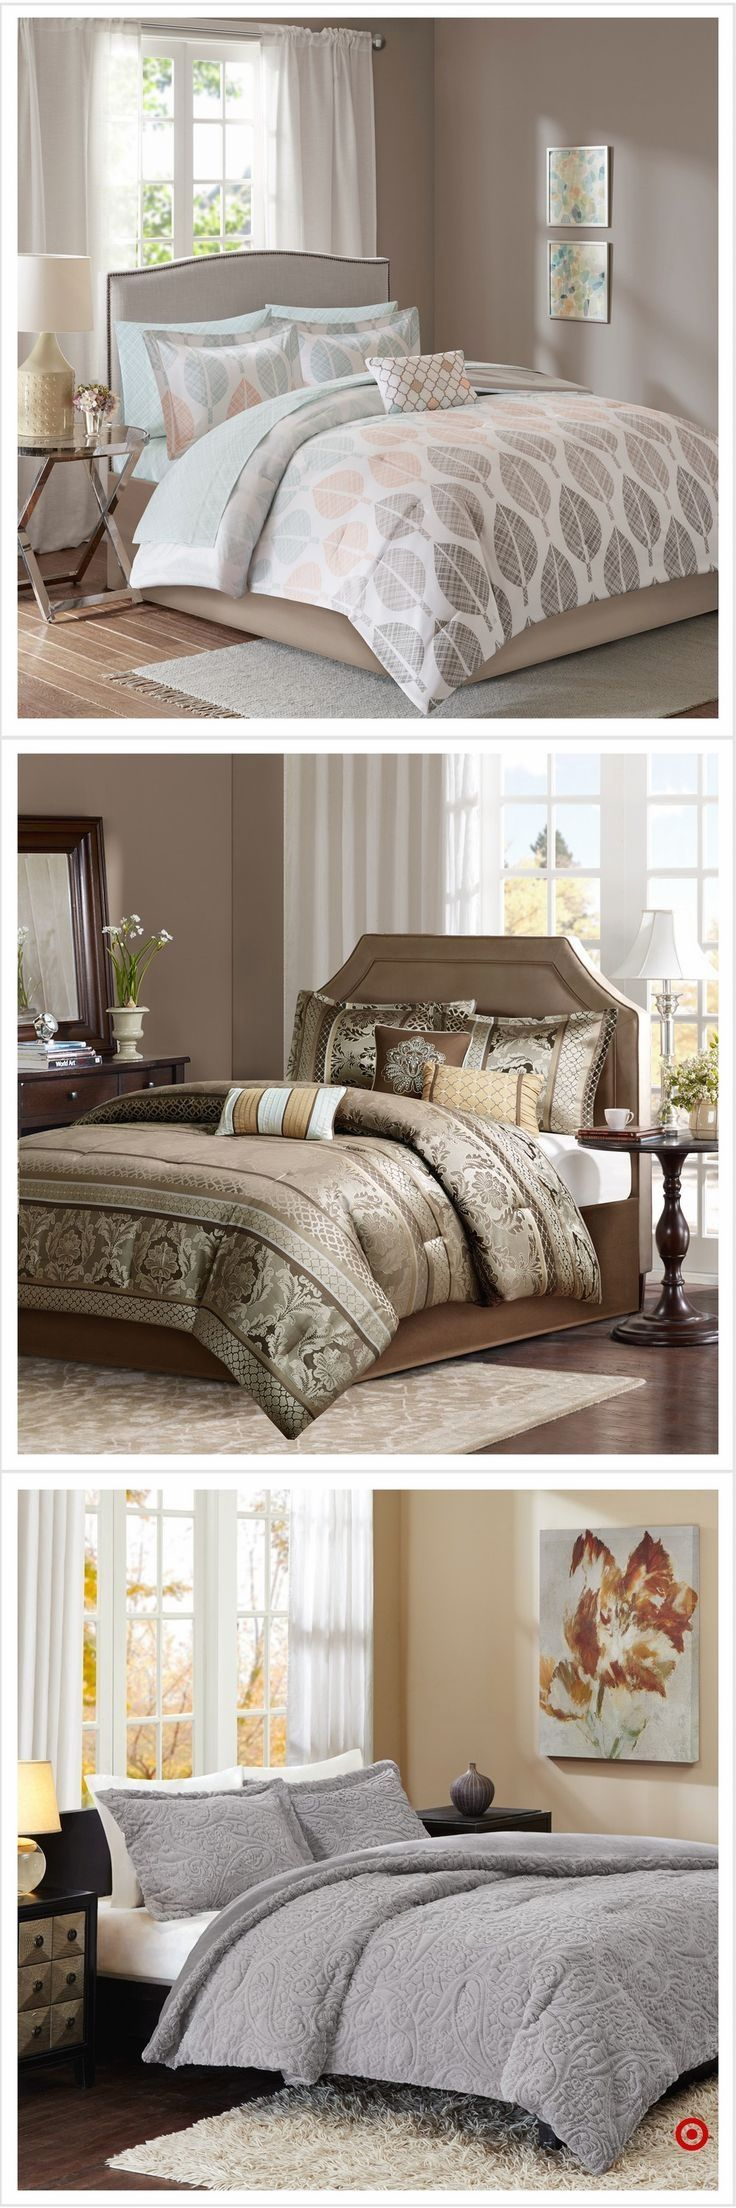 Bedroom decor ideas the bedroom is without a doubt essentially the